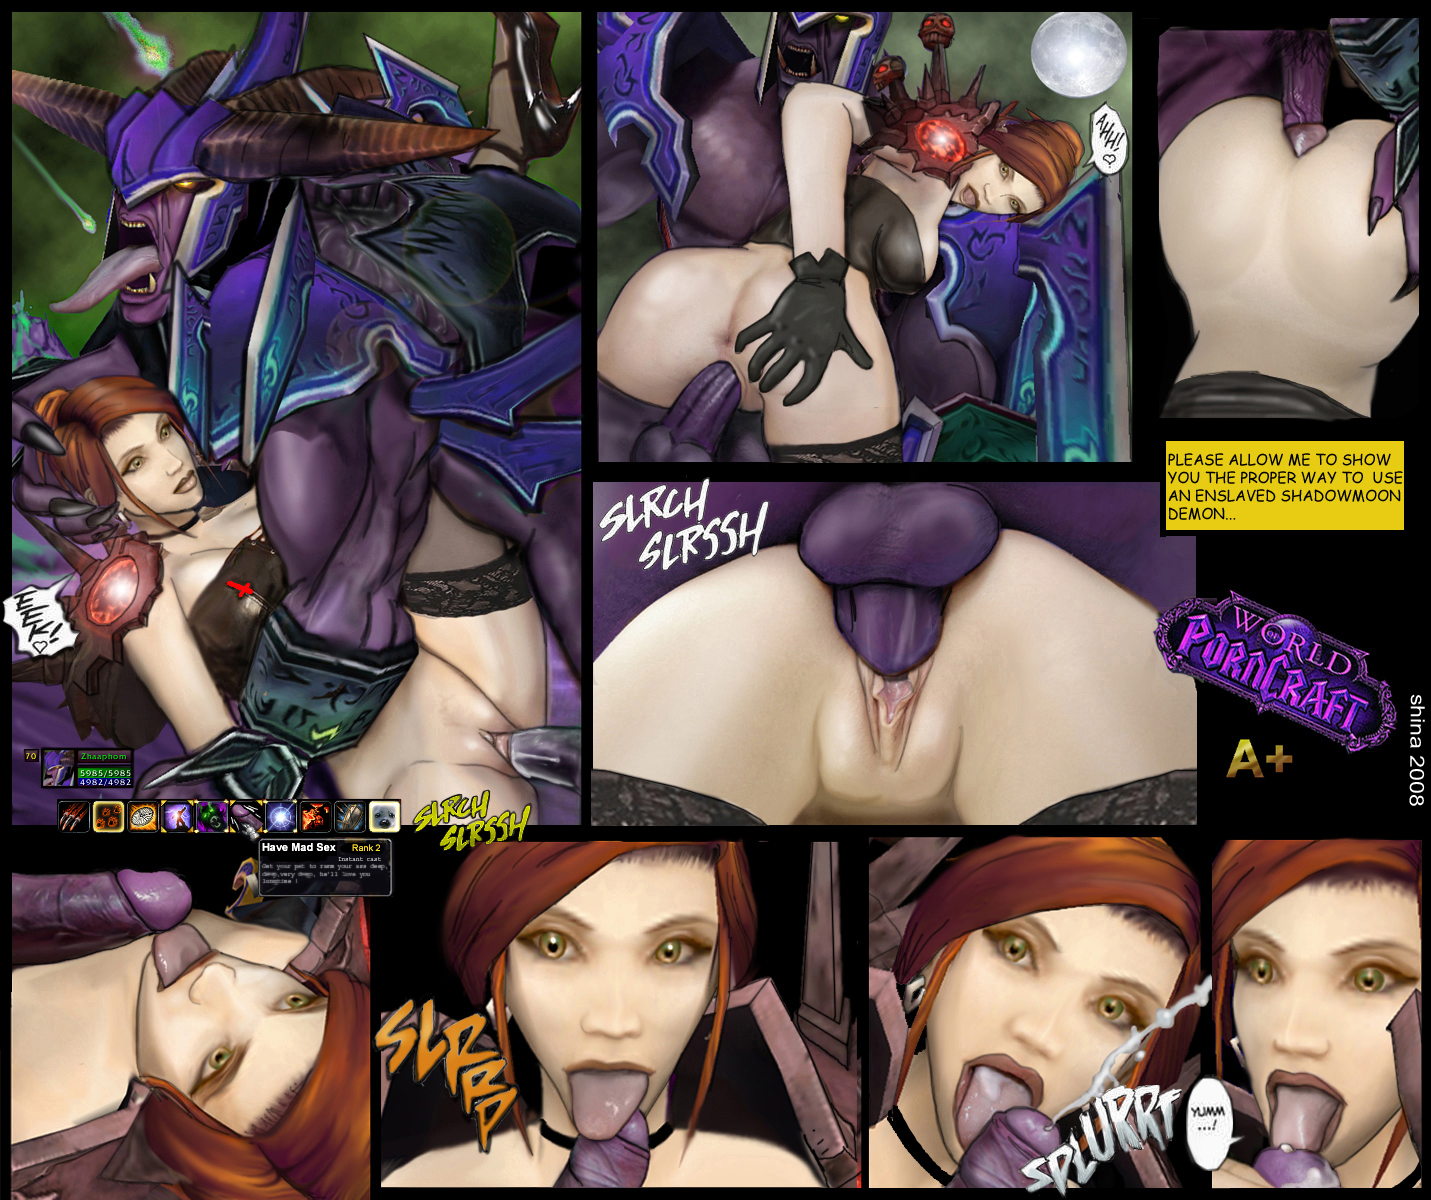 Xxx world warcraft pic sexy slut